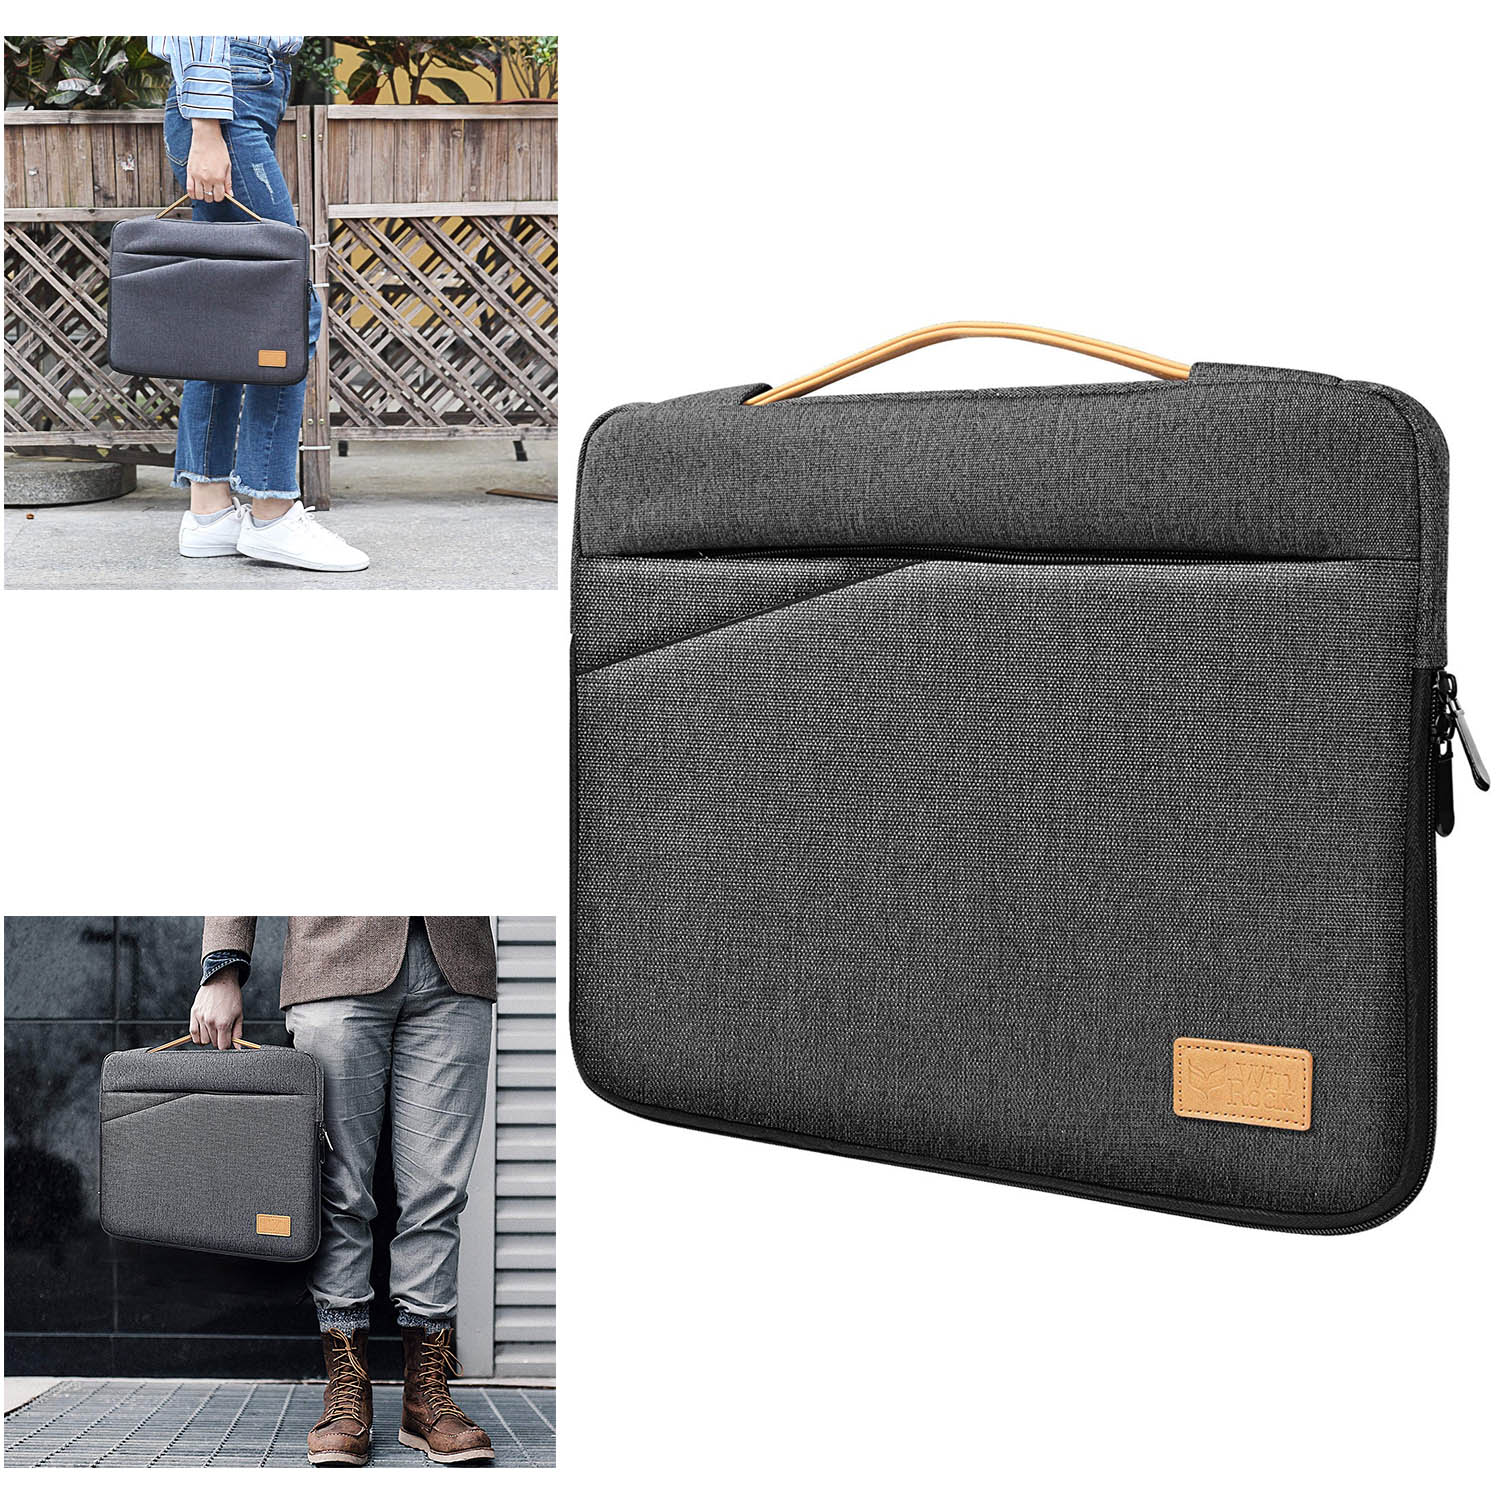 13-13.5 Inch Laptop Sleeve Case Bag for Macbook Pro ProRetina HP Dell Acer Asus Thinkpad Laptops Notebooks... by KOAVOTY